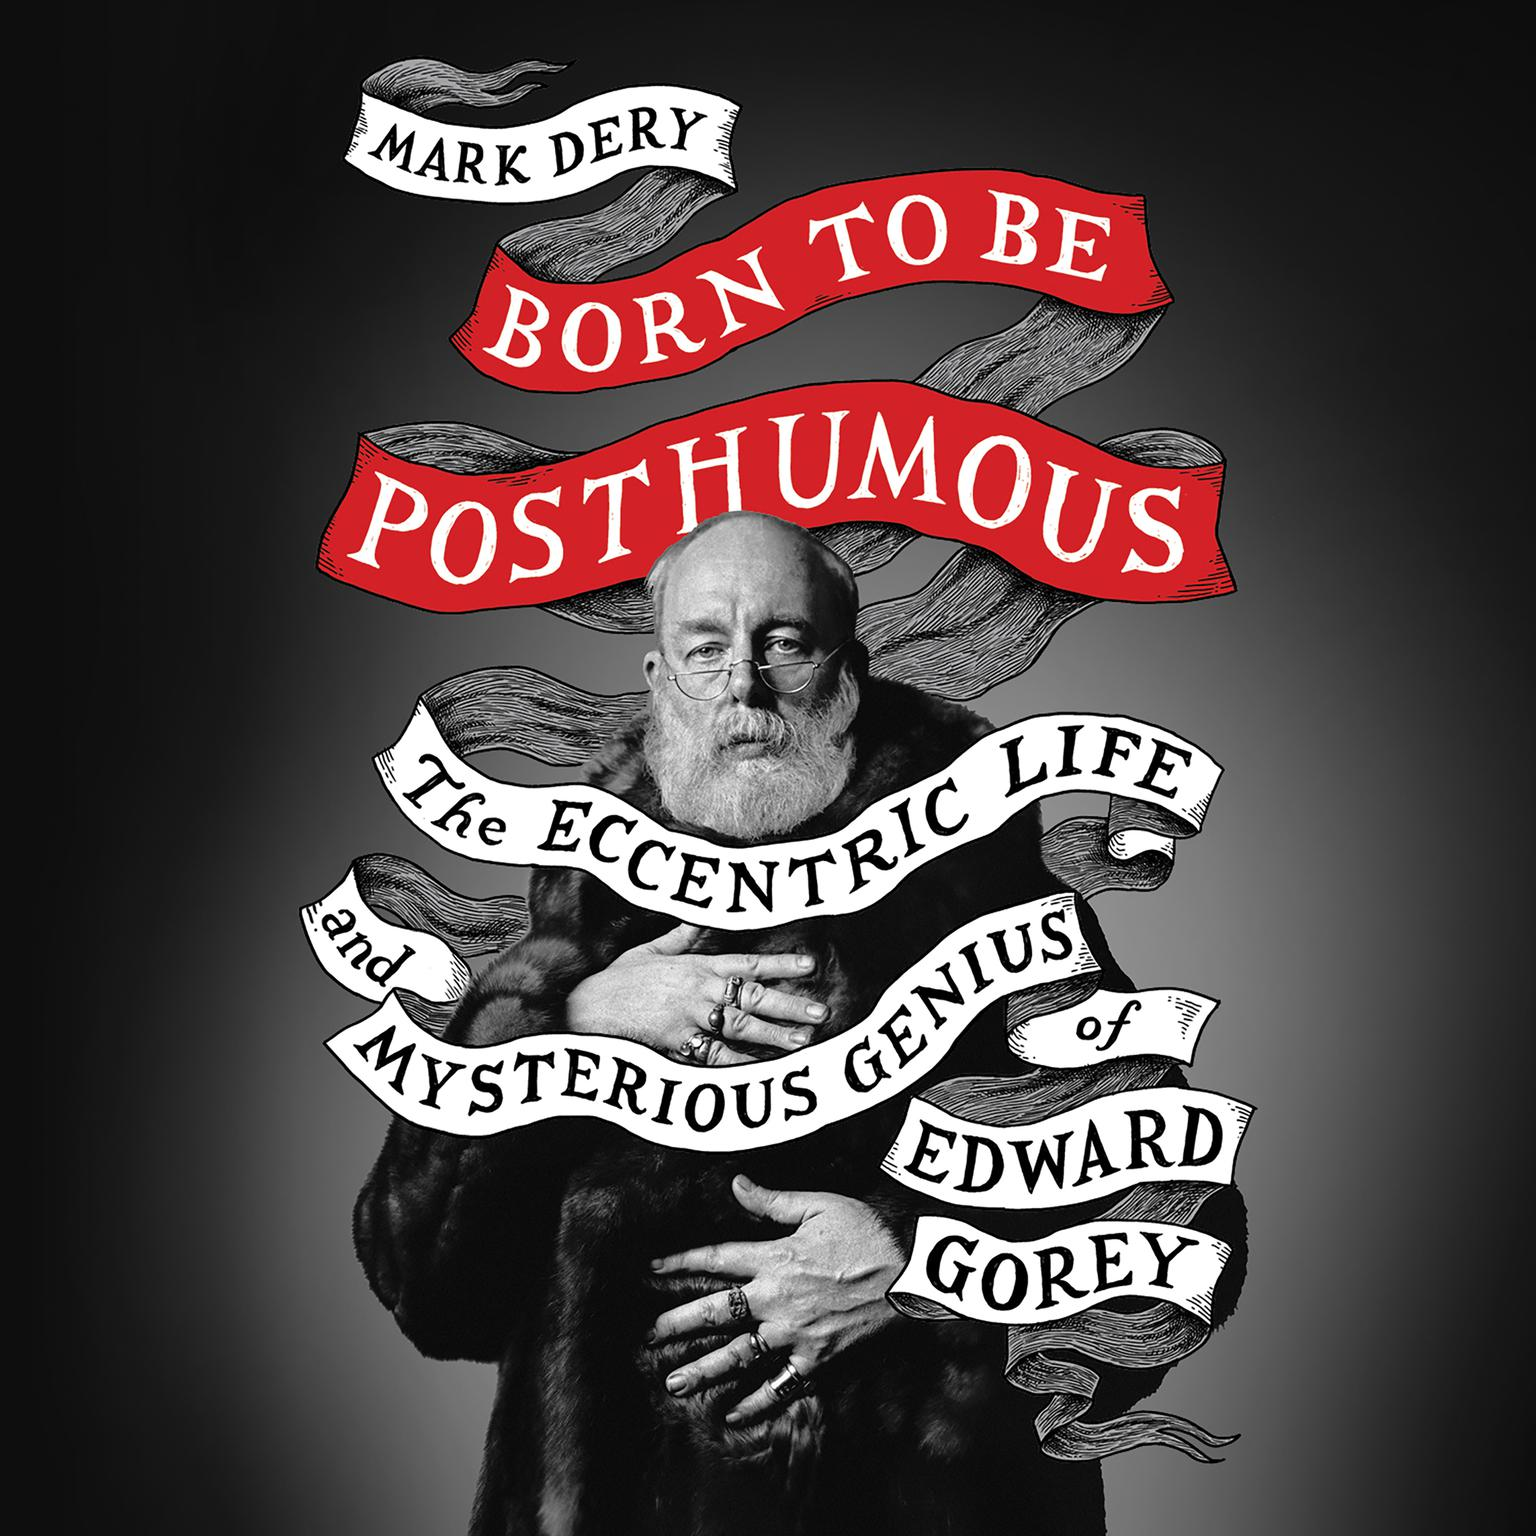 Born to Be Posthumous: The Eccentric Life and Mysterious Genius of Edward Gorey Audiobook, by Mark Dery